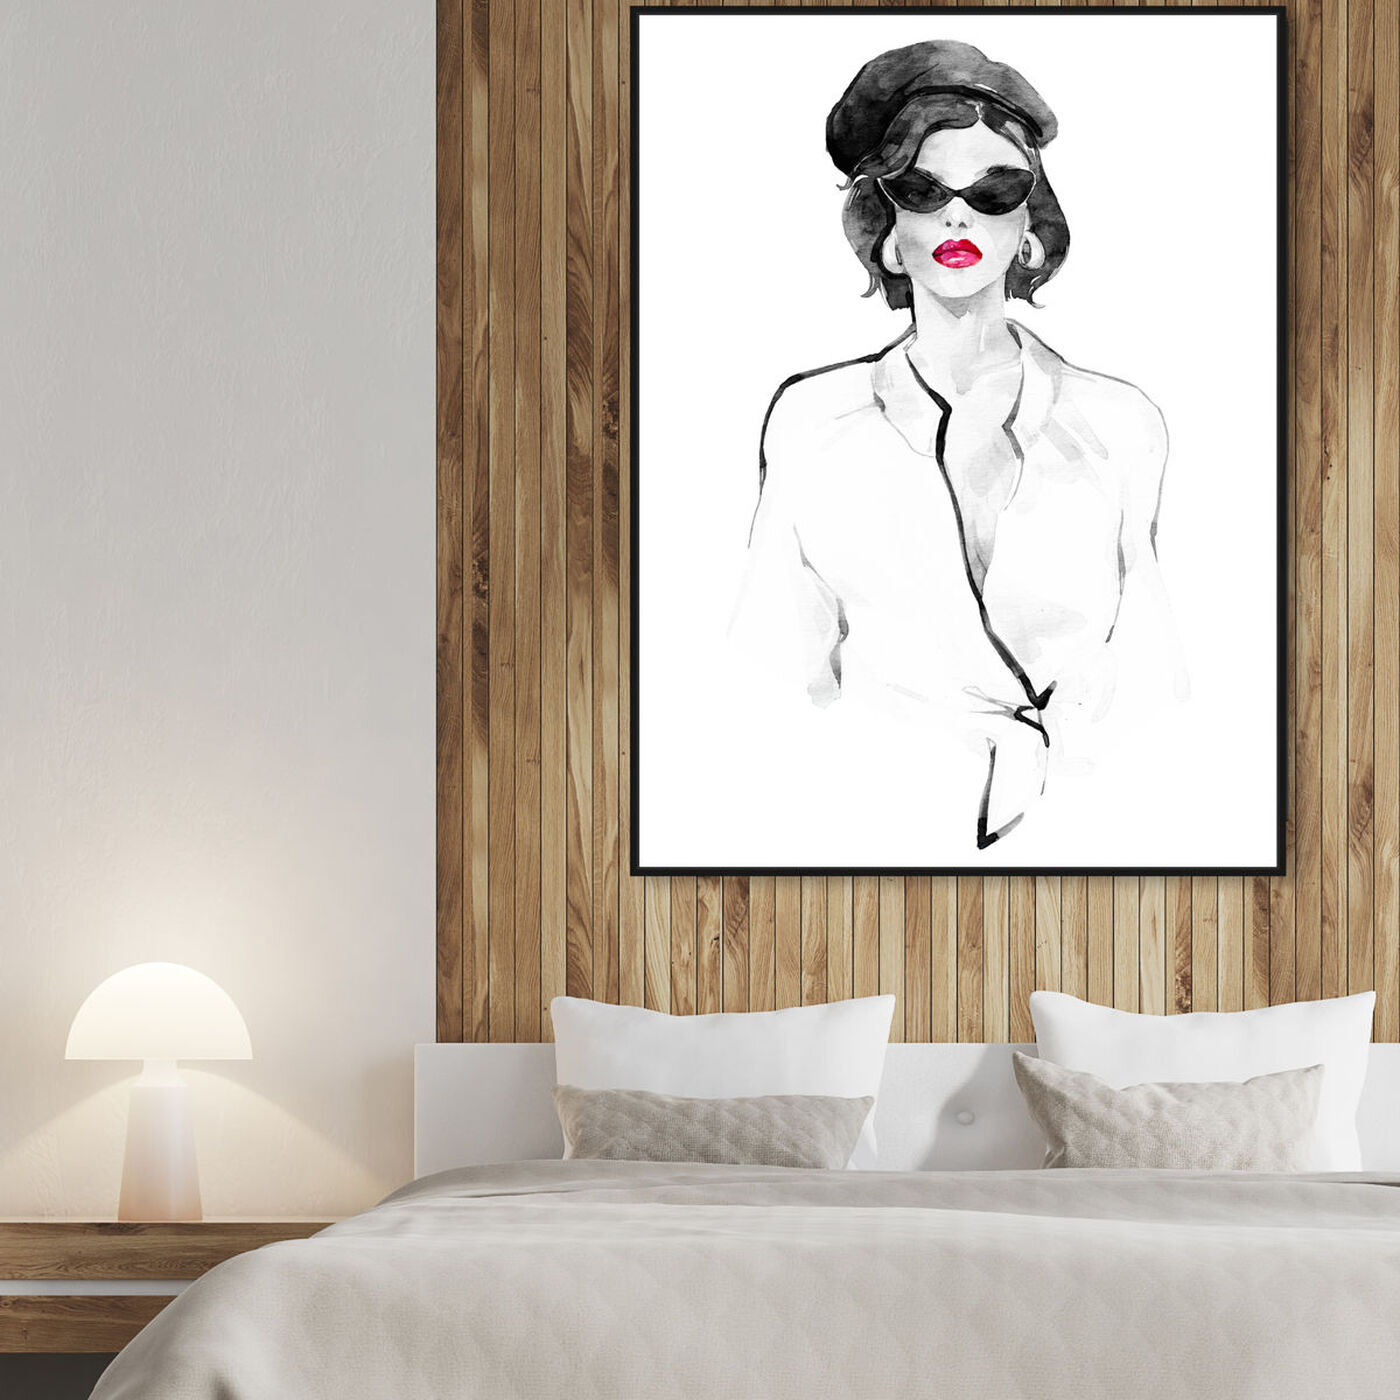 Hanging view of French Beret and Ready Mono featuring fashion and glam and lips art.